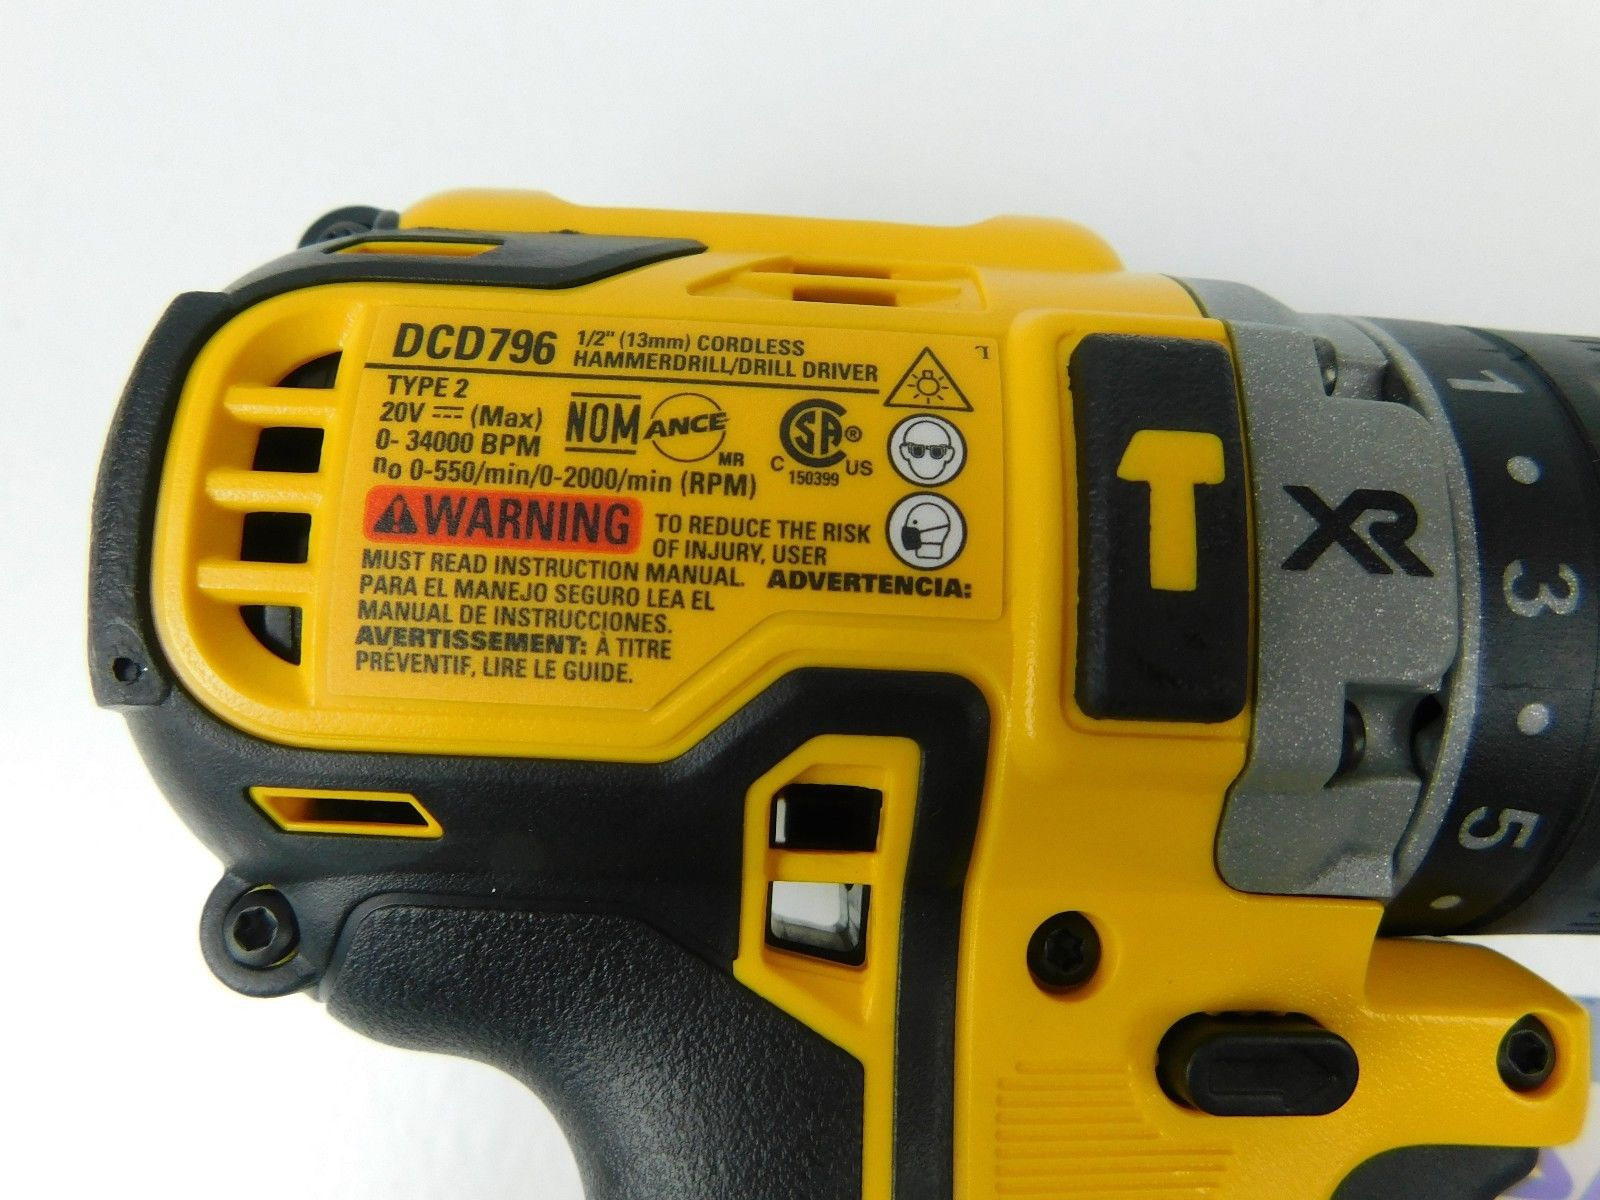 Dewalt-DCD796B-20V-Max-Xr-Lithium-ion-1-2-Cordless-Brushless-Compact-image-2